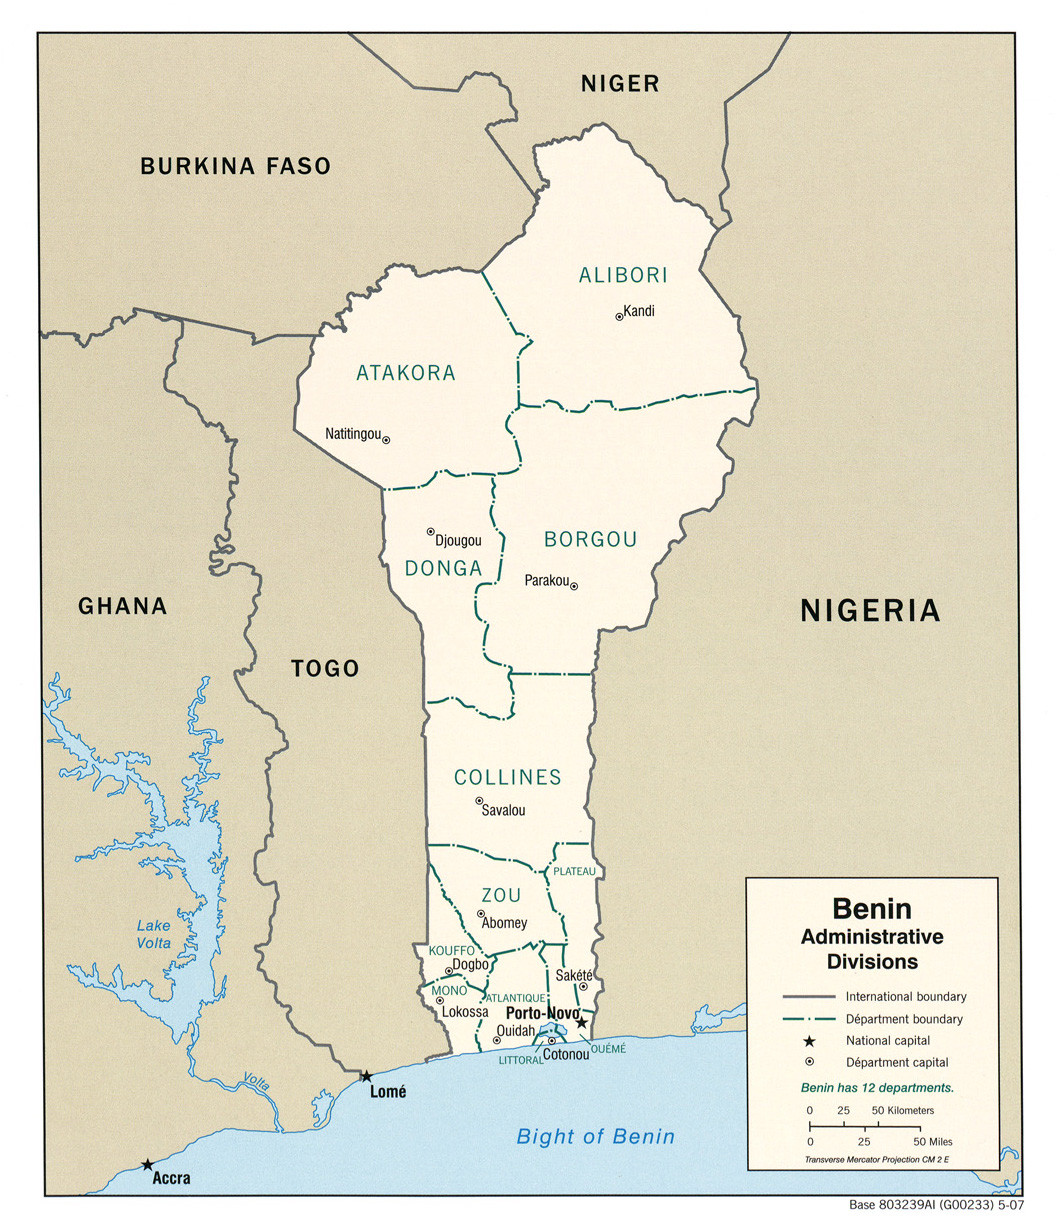 FileBenin Administrative Divisions Map 2007jpg The Work of Gods